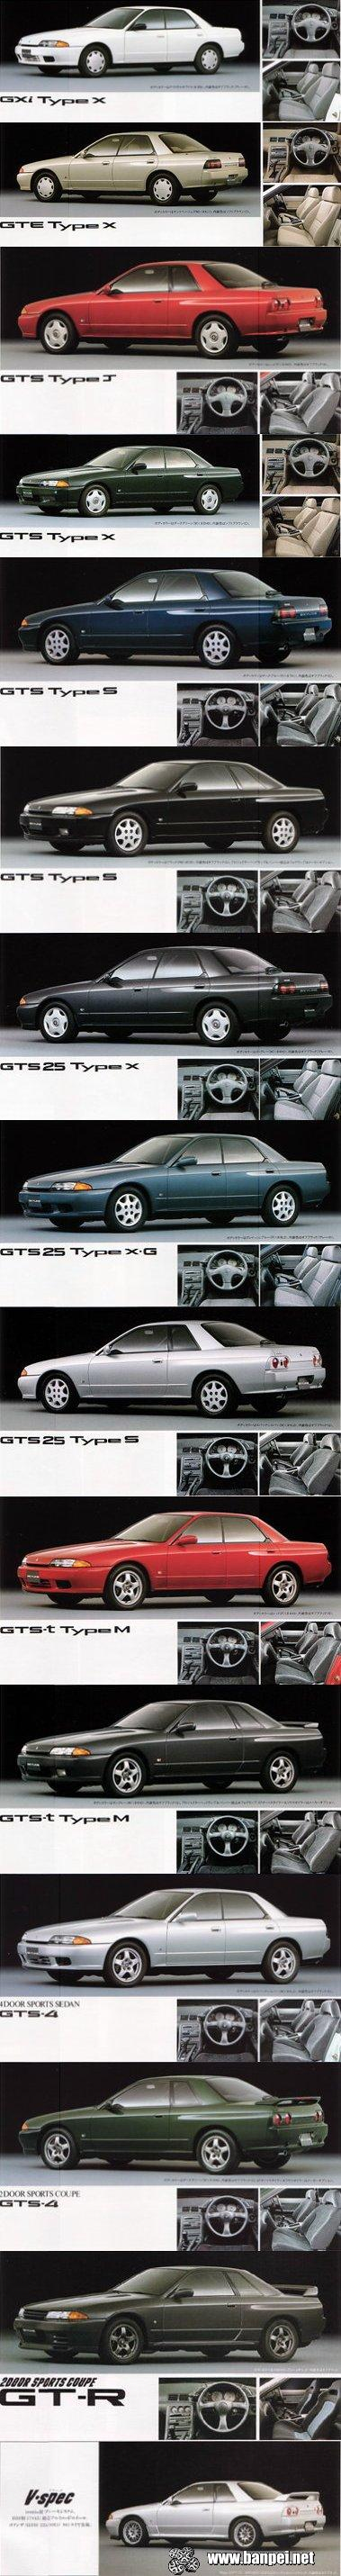 Nissan Skyline R32 all models